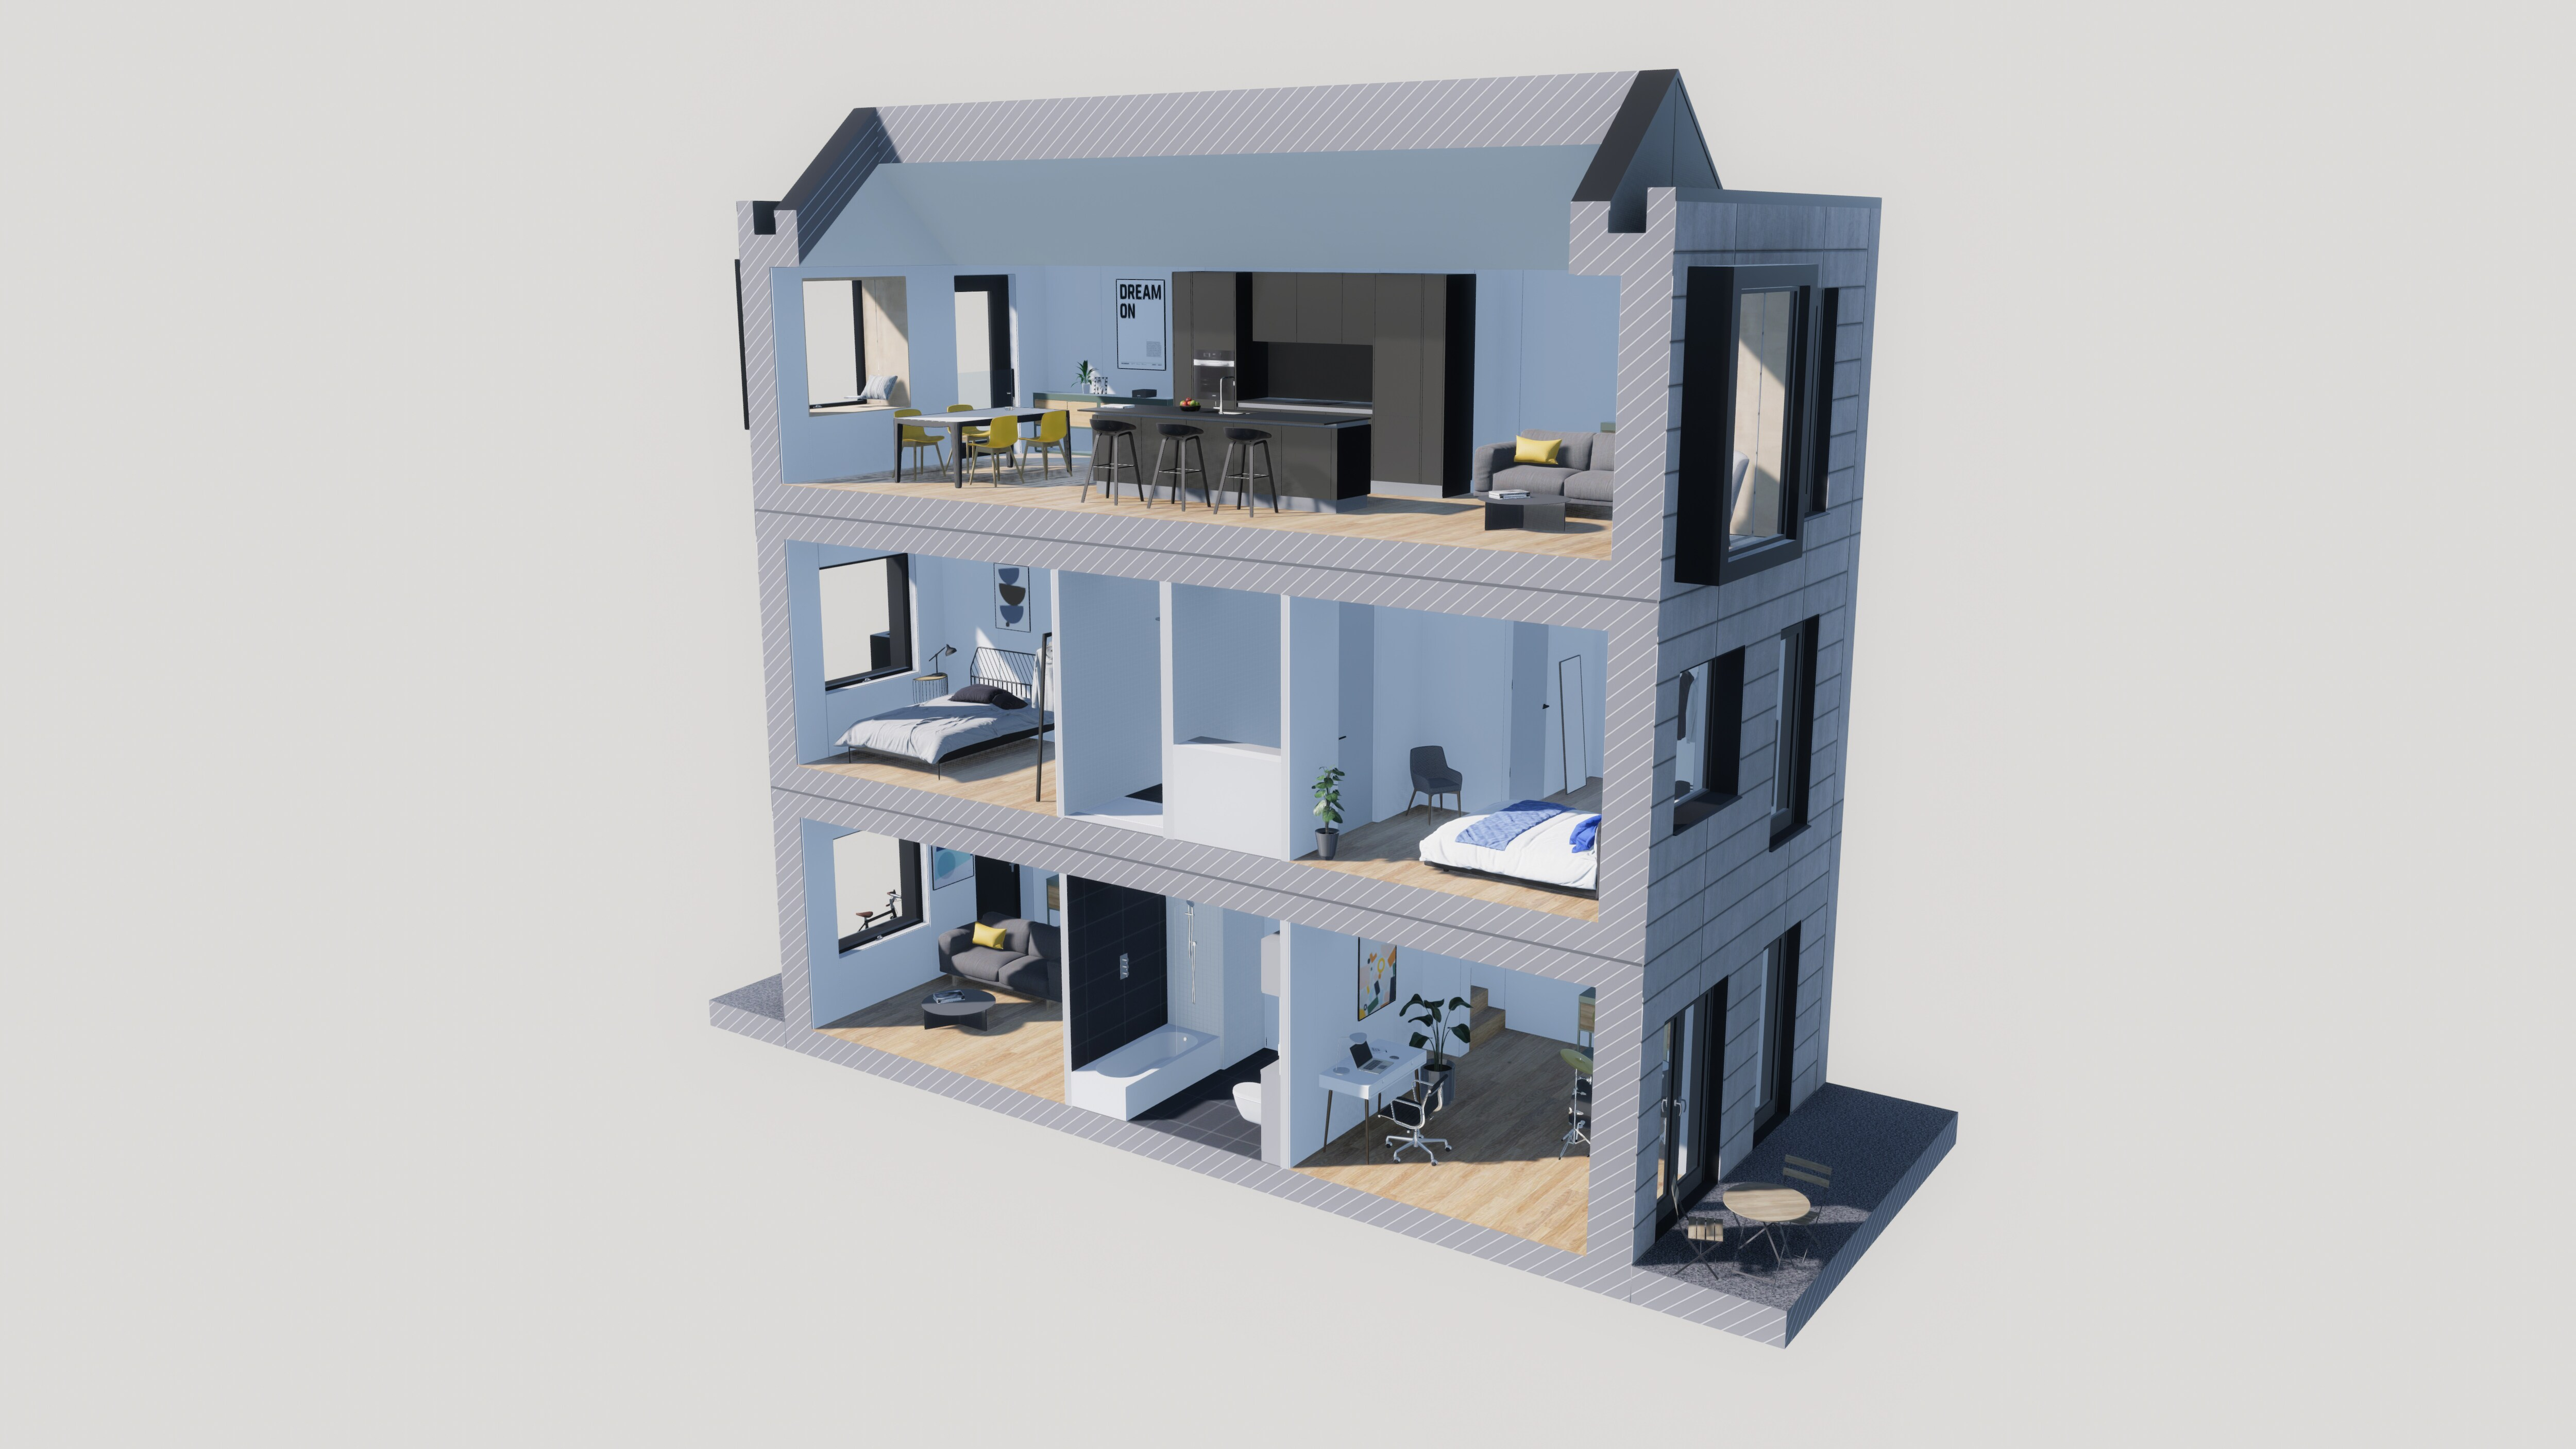 3D blueprint of a house that allows you to see inside almost like a dollhouse.